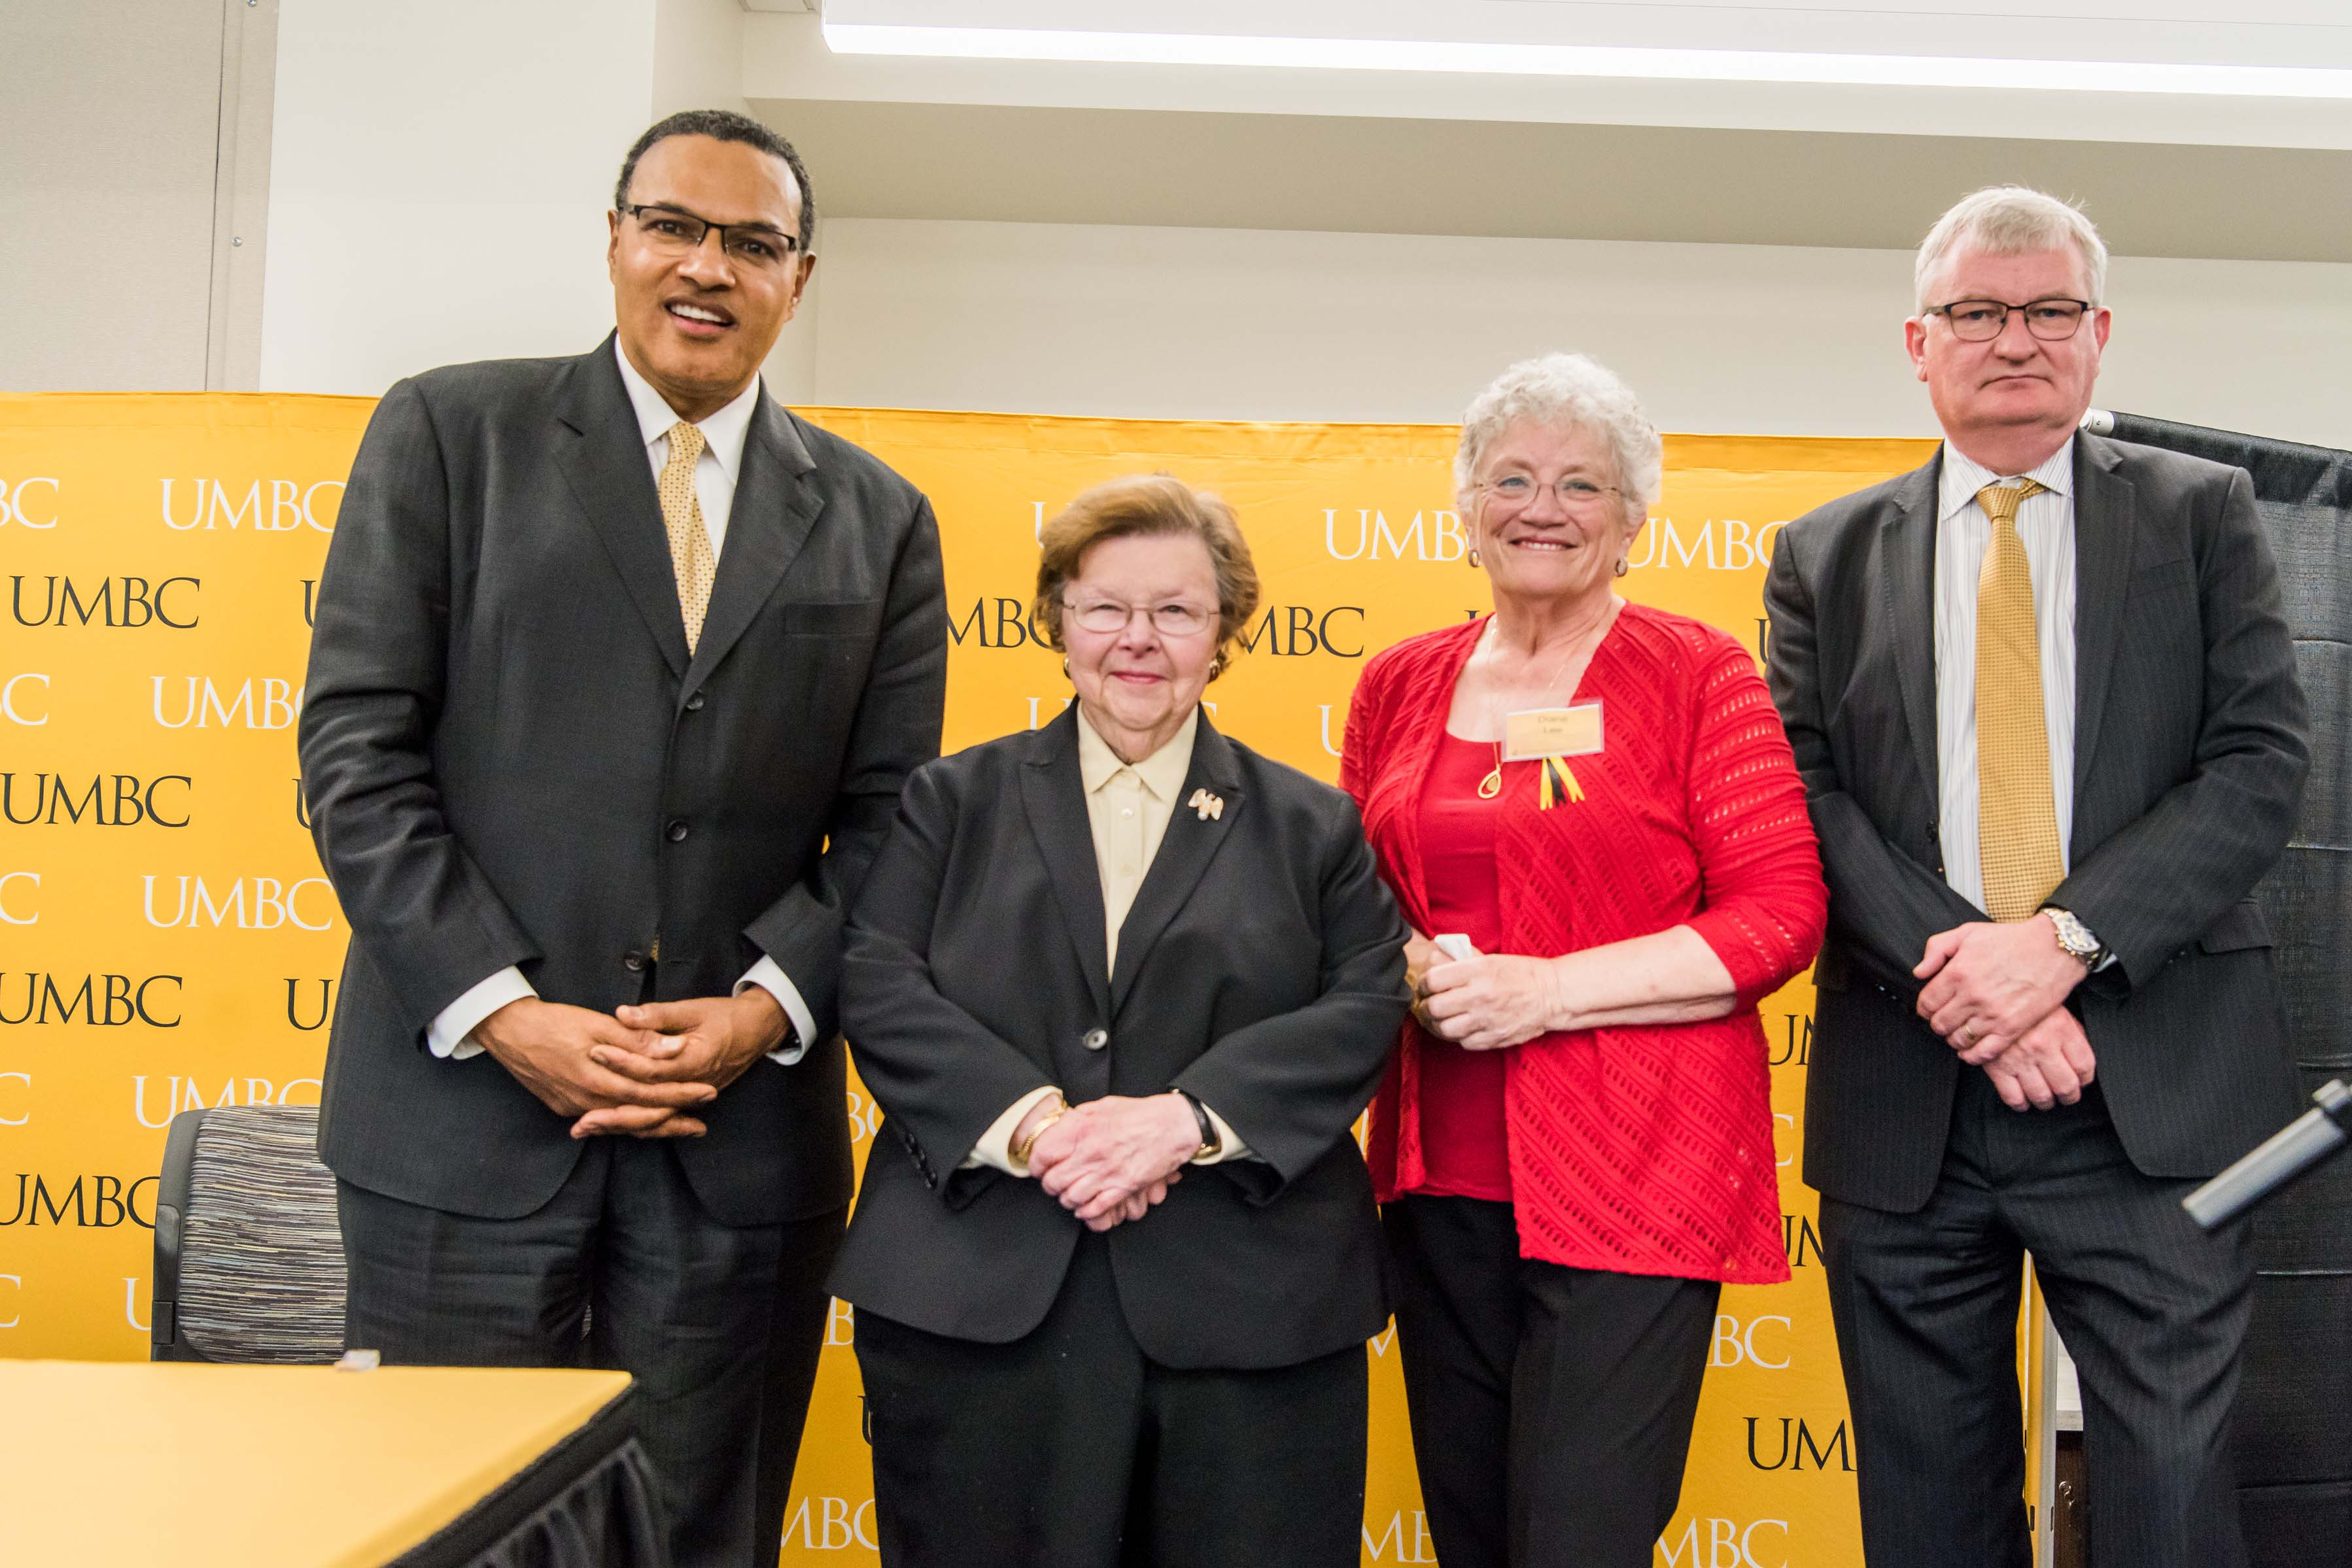 Group of campus leaders including Hrabowski pose together at Wisdom Institute lunch